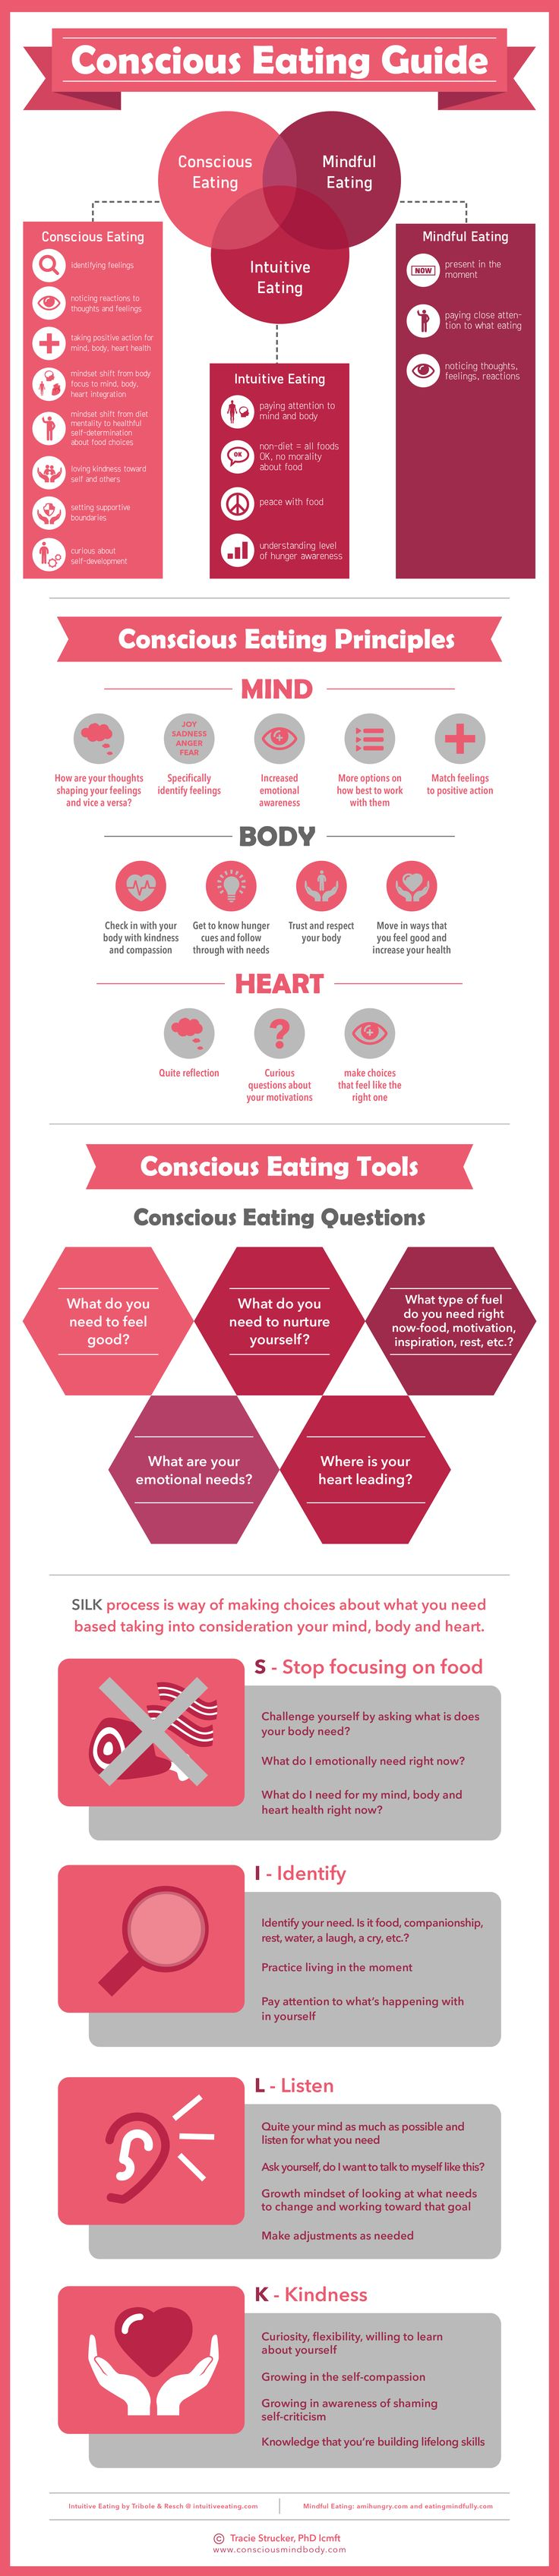 Conscious Eating stops mindless emotional eating in it's tracks! Learn how you can use Conscious Eating be feel good, leave food worries behind, feel good about your body and live your life at peace.